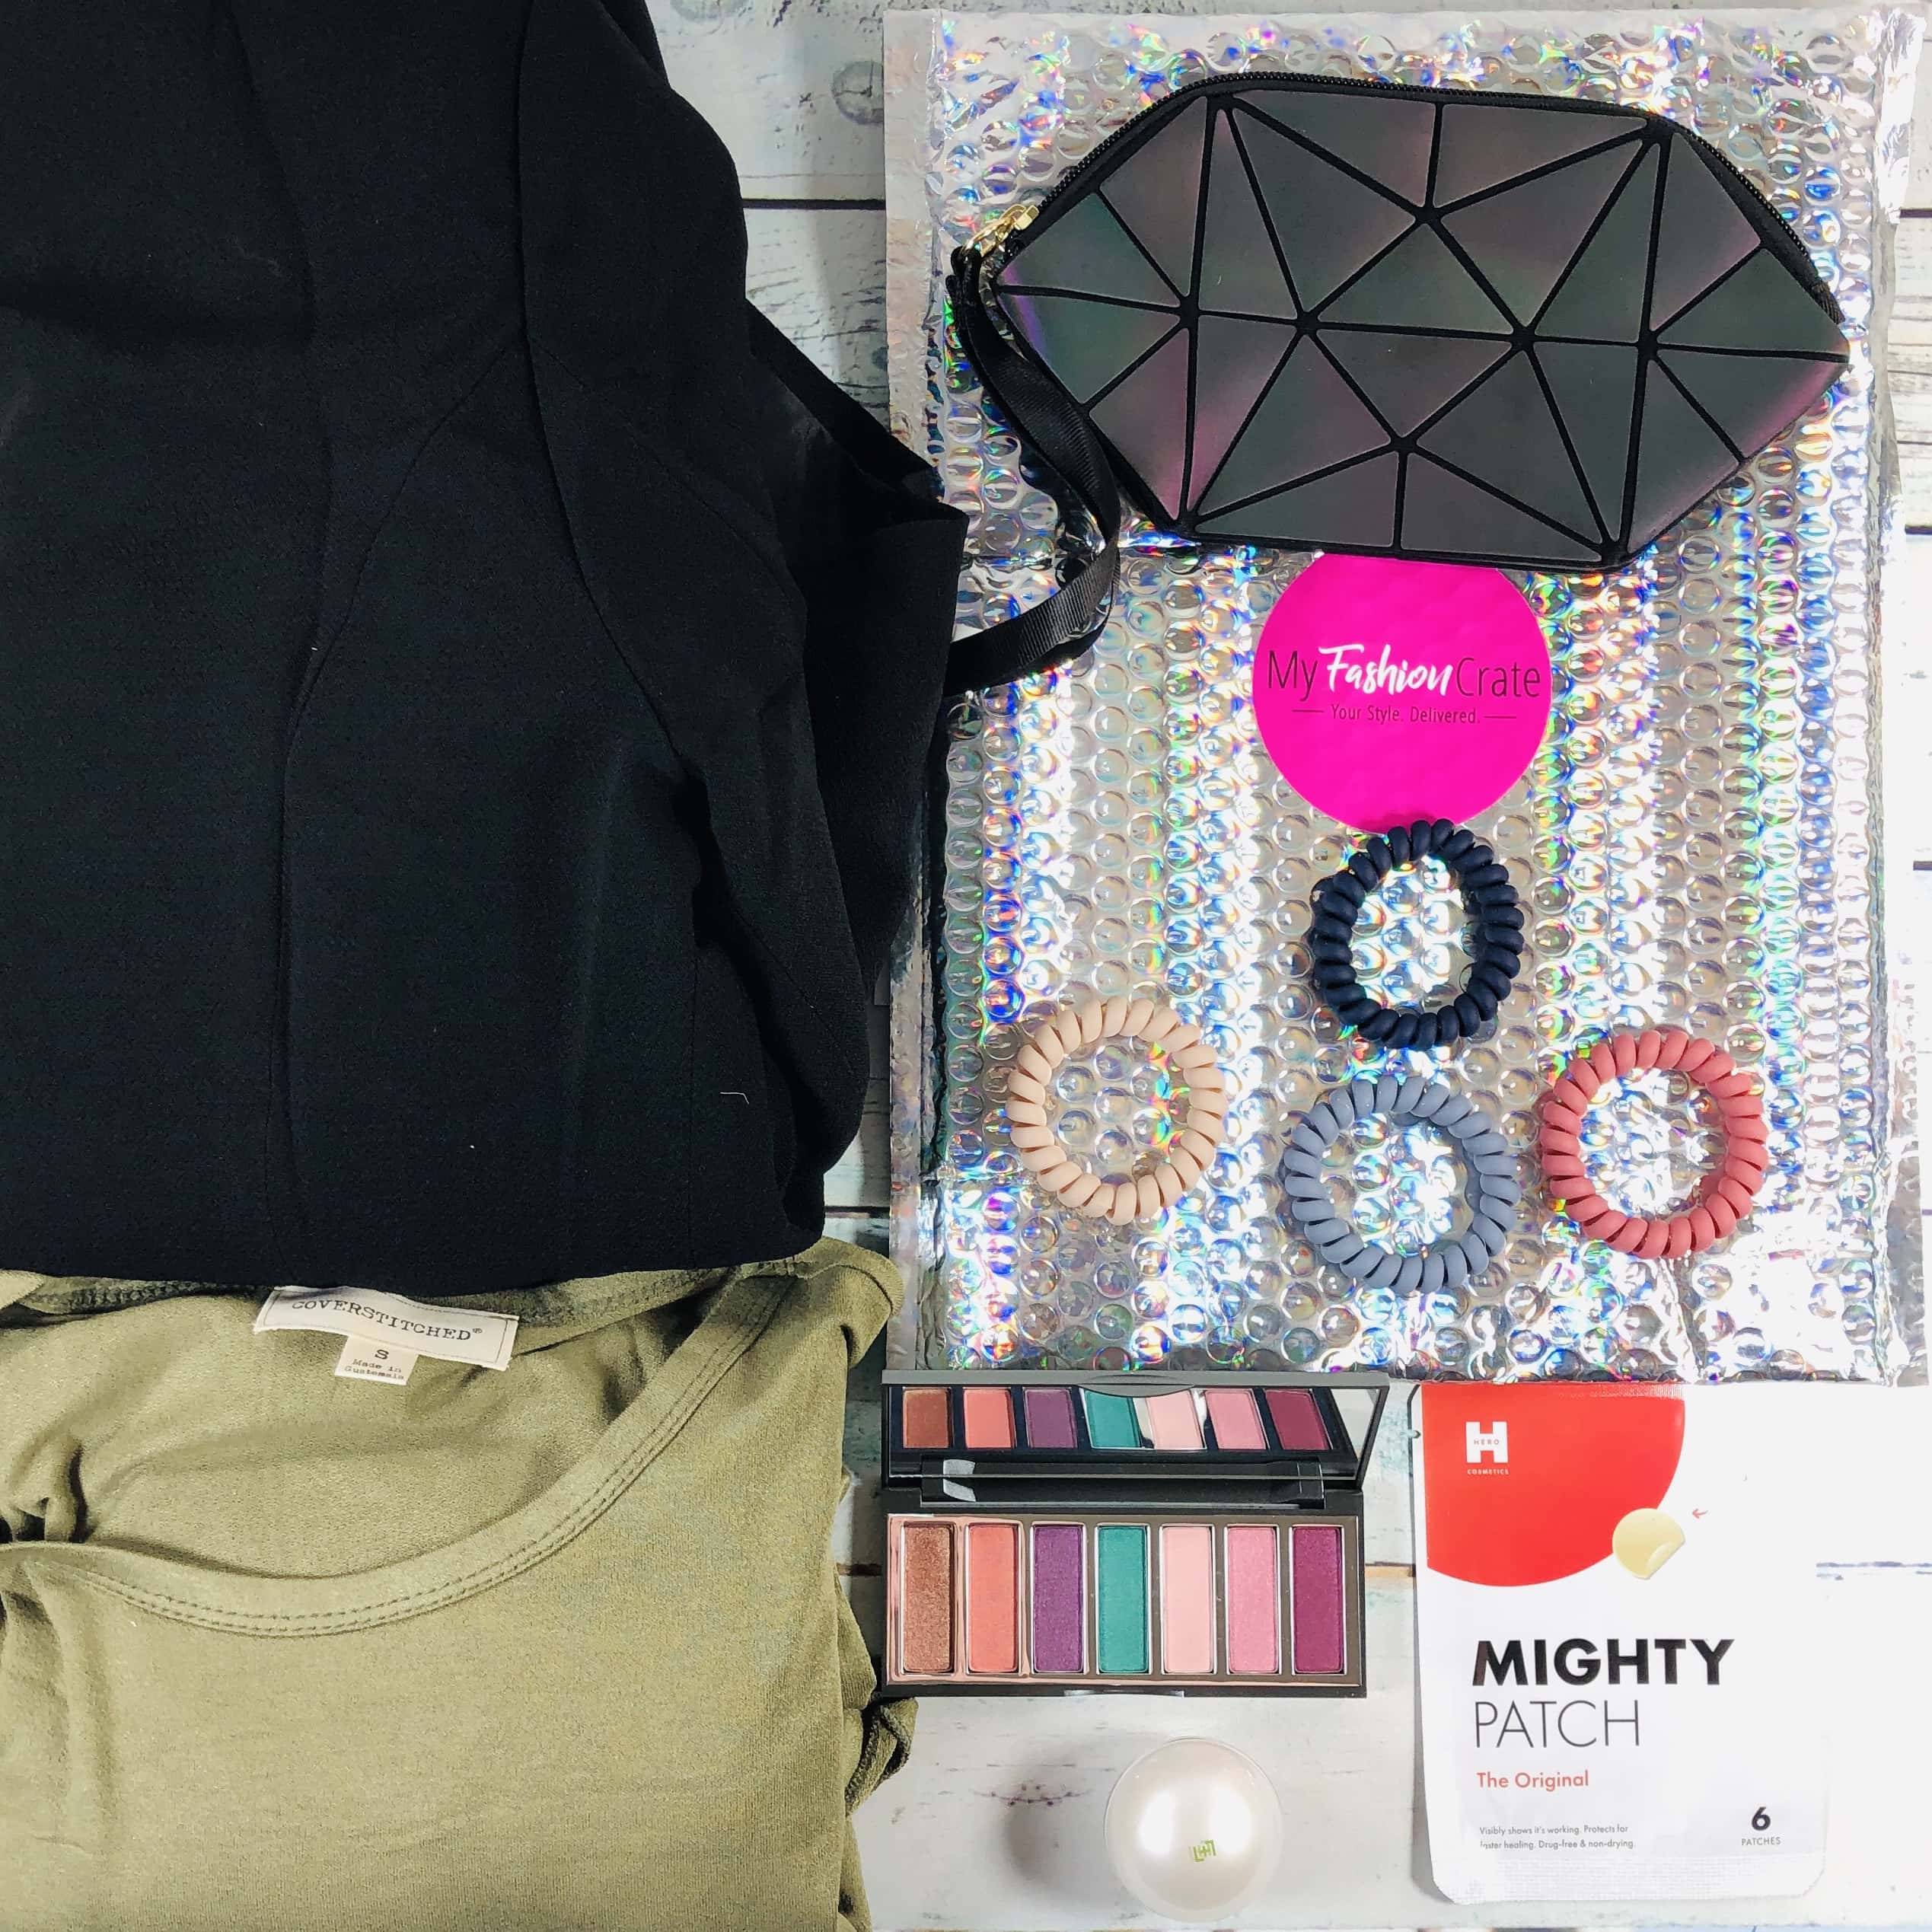 My Fashion Crate March 2019 Subscription Box Review